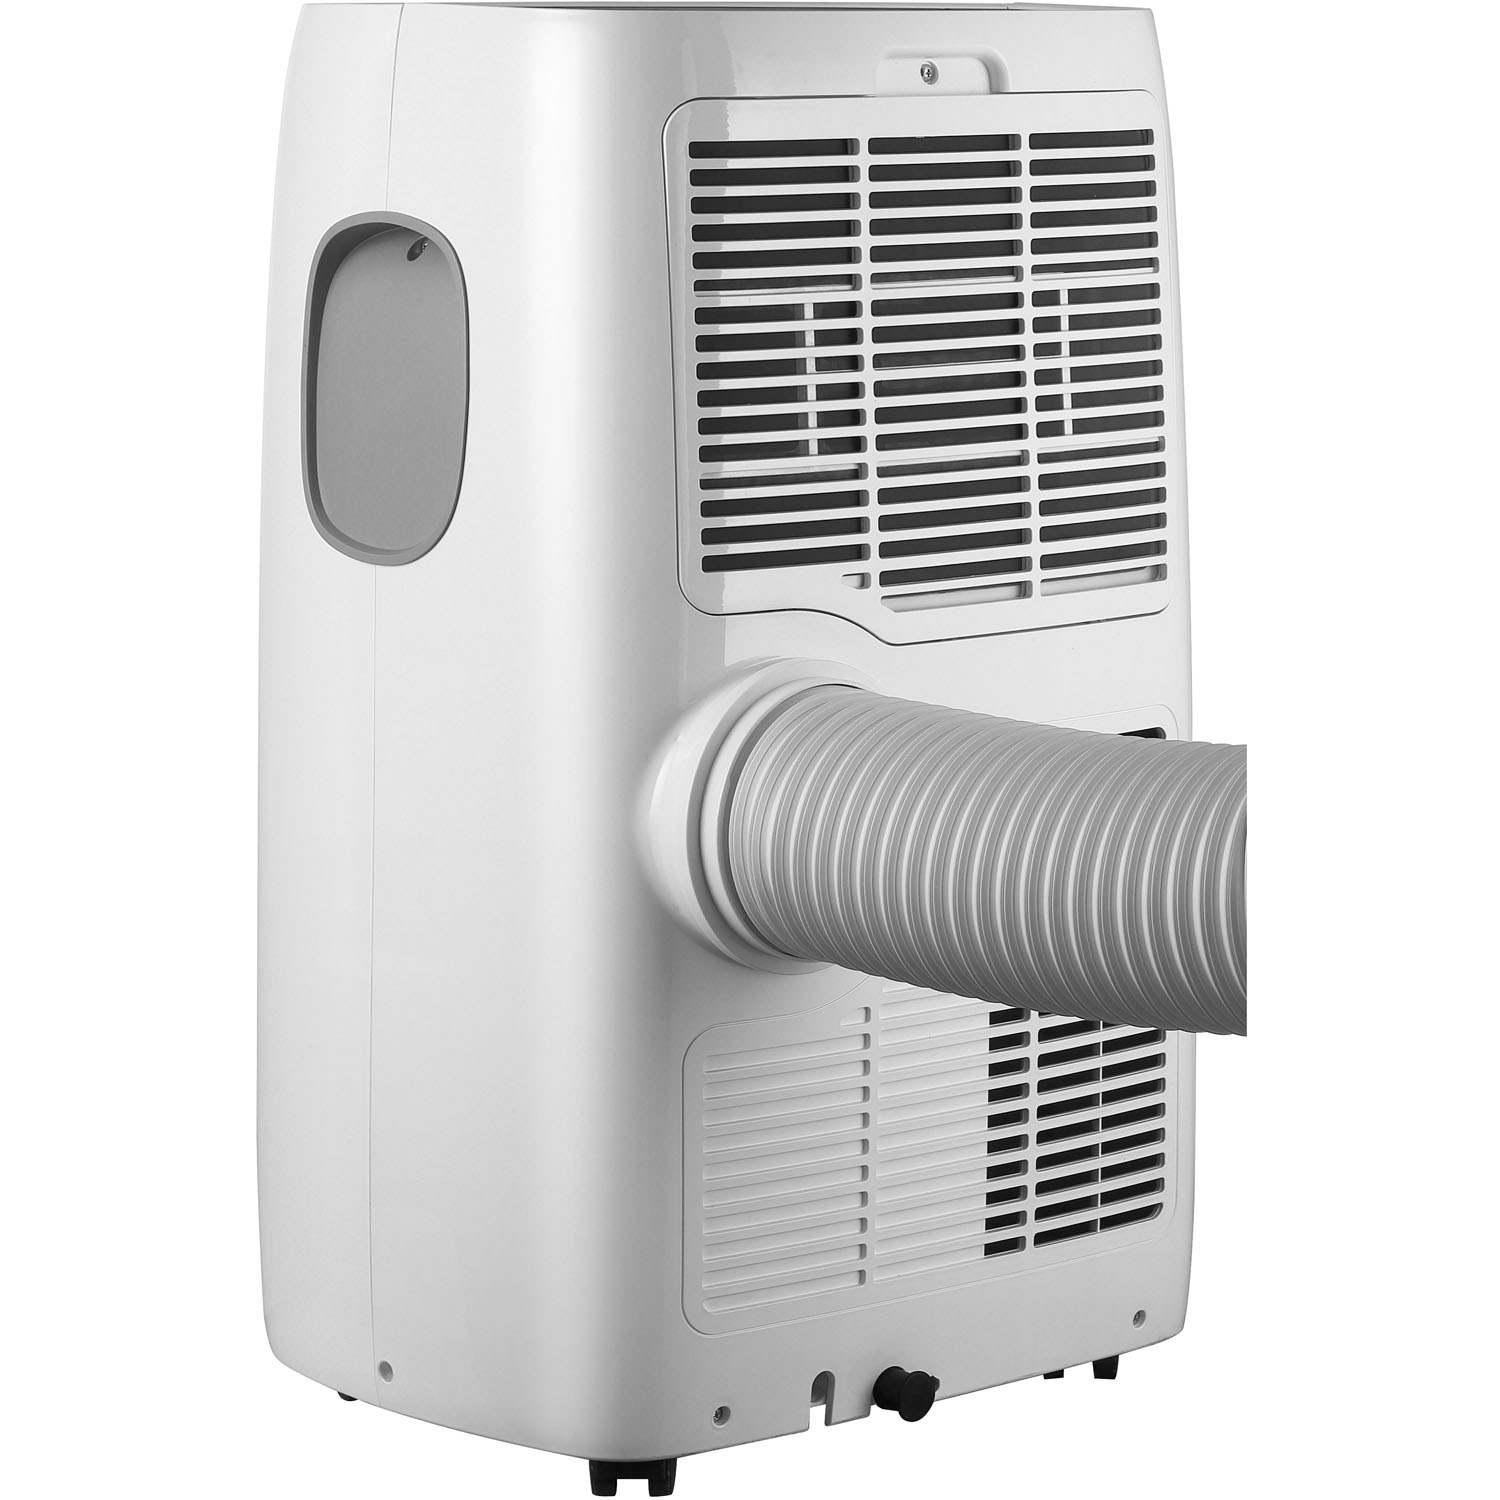 Home Air Conditioner Quiet